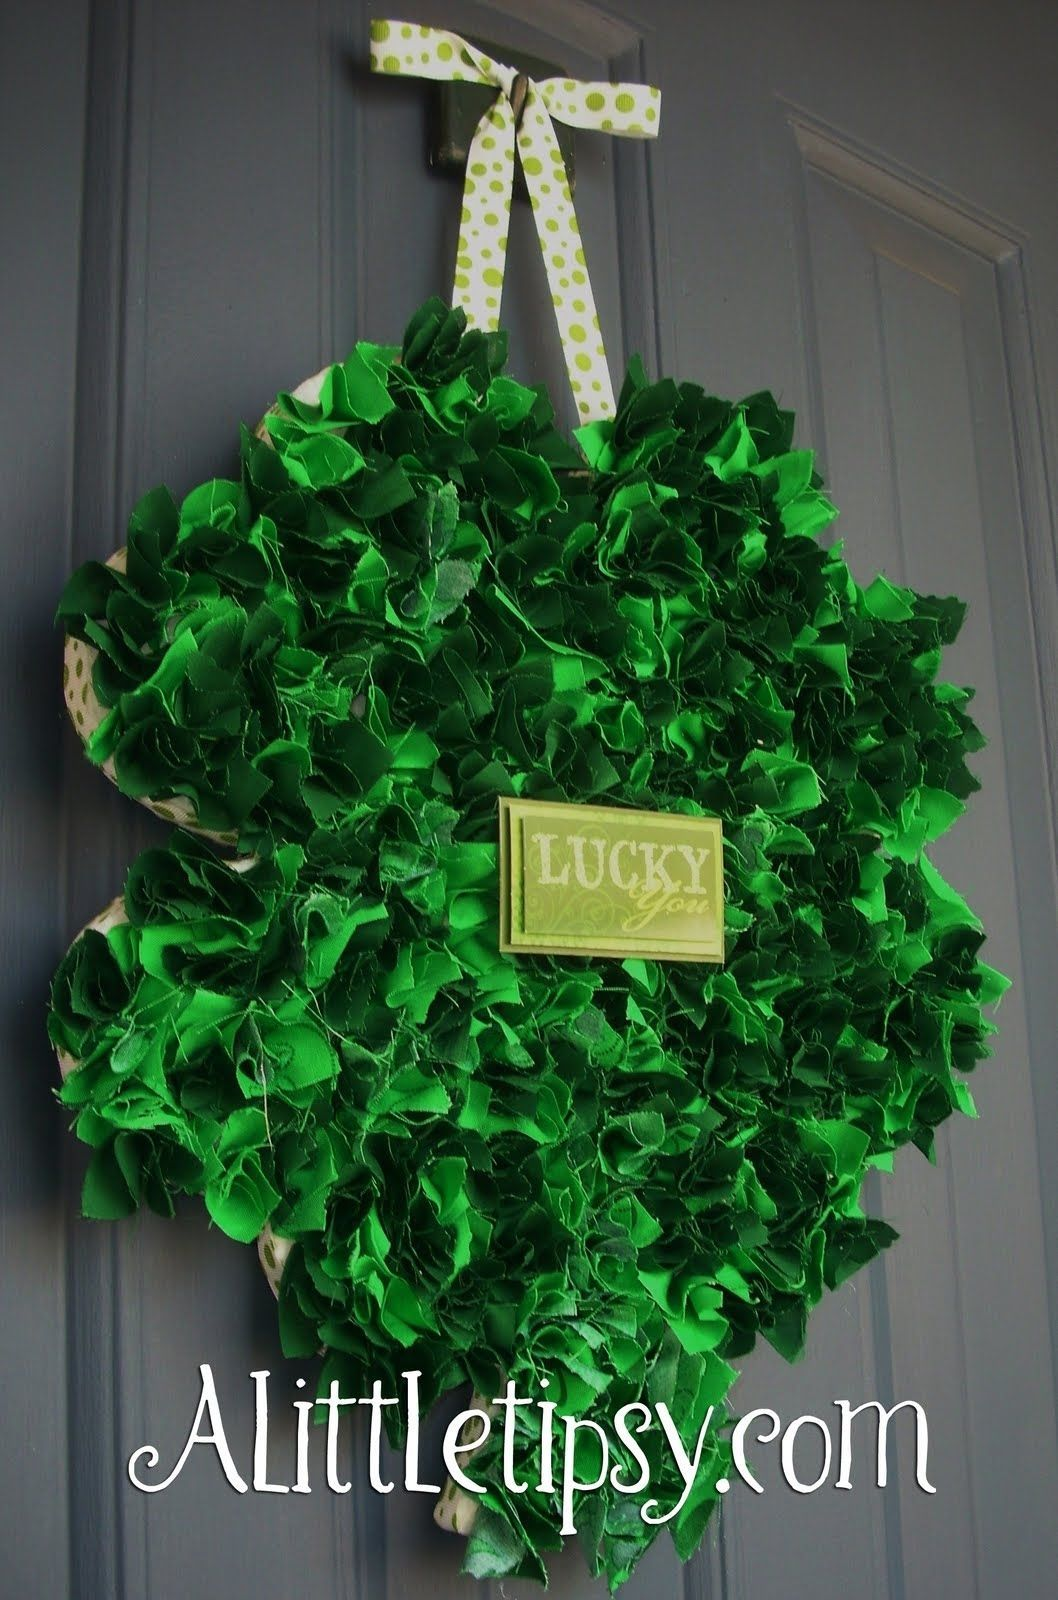 Fabric Shamrock Wreath Pictures, Photos, and Images for